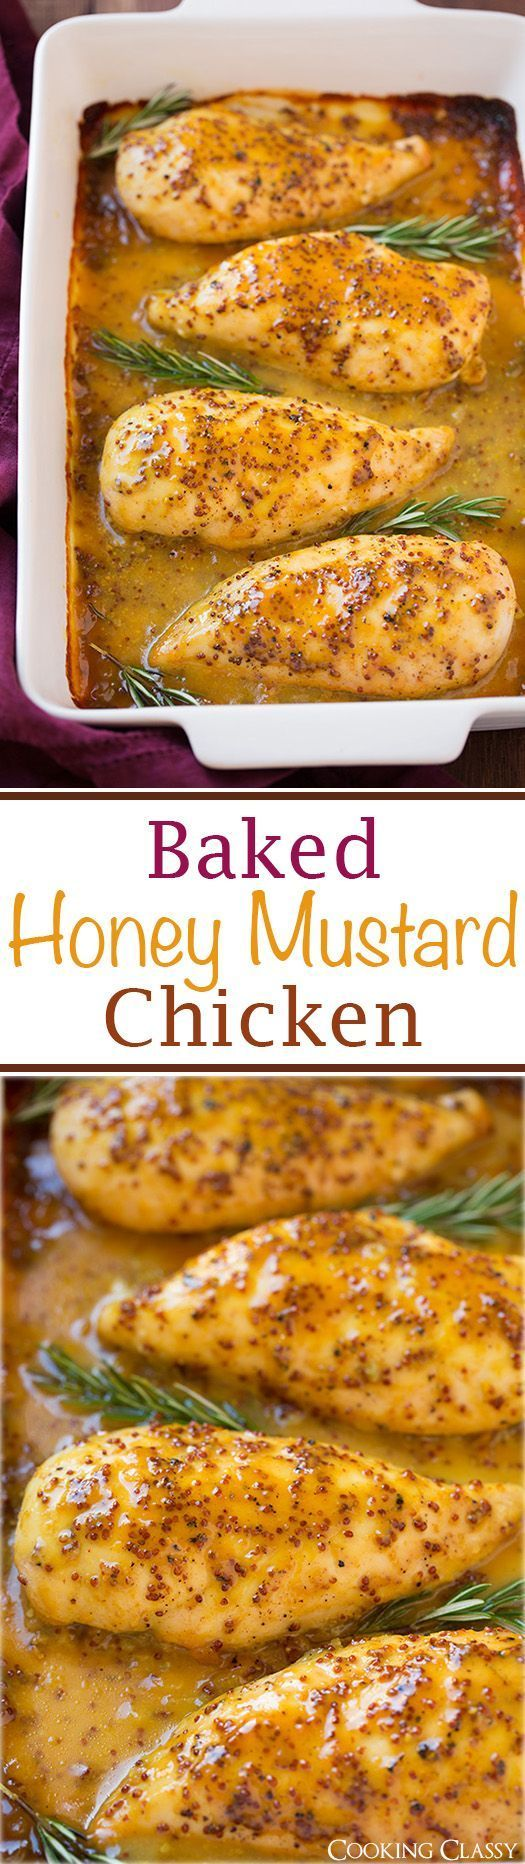 Baked Honey Mustard Chicken - this is SO flavorful and delicious!